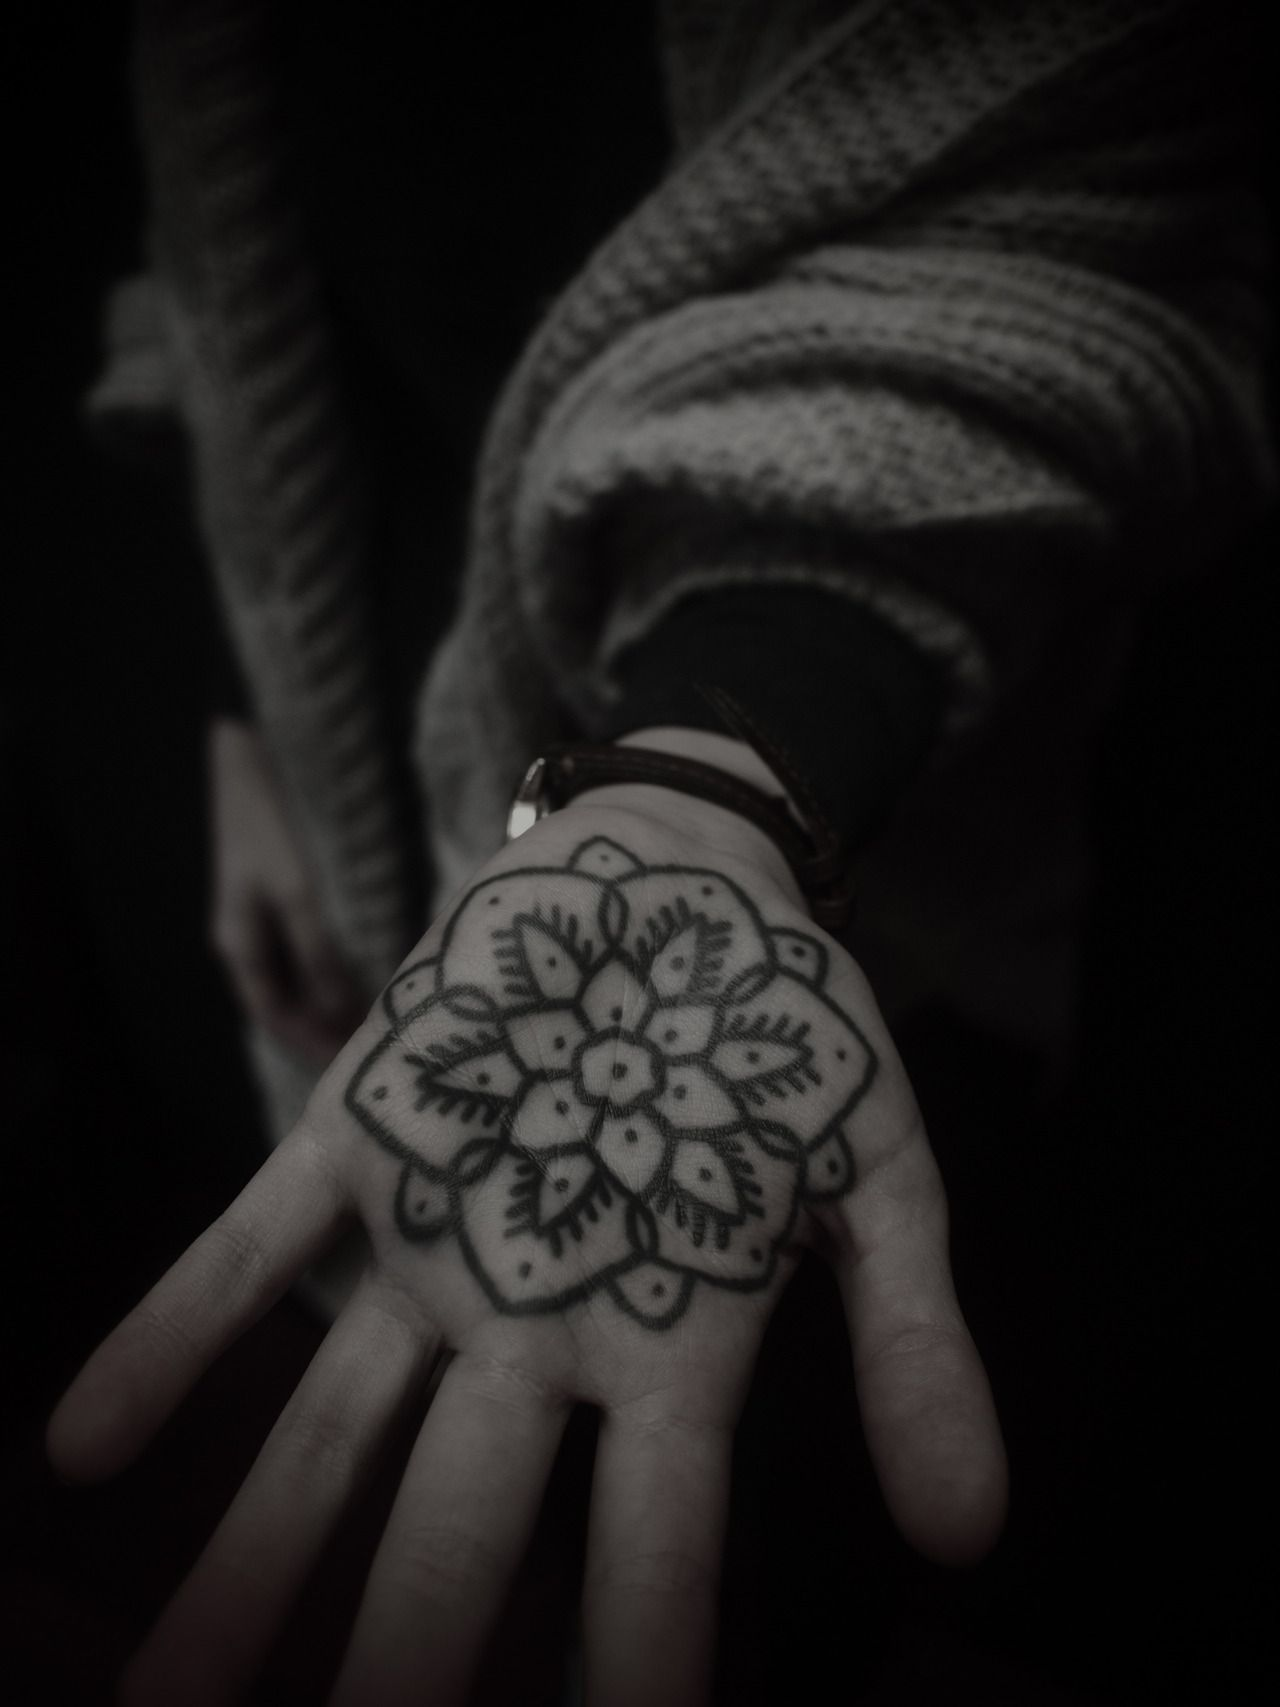 Cool tattoos for white guys guy le tattooer  my other palm should be prettier  henna